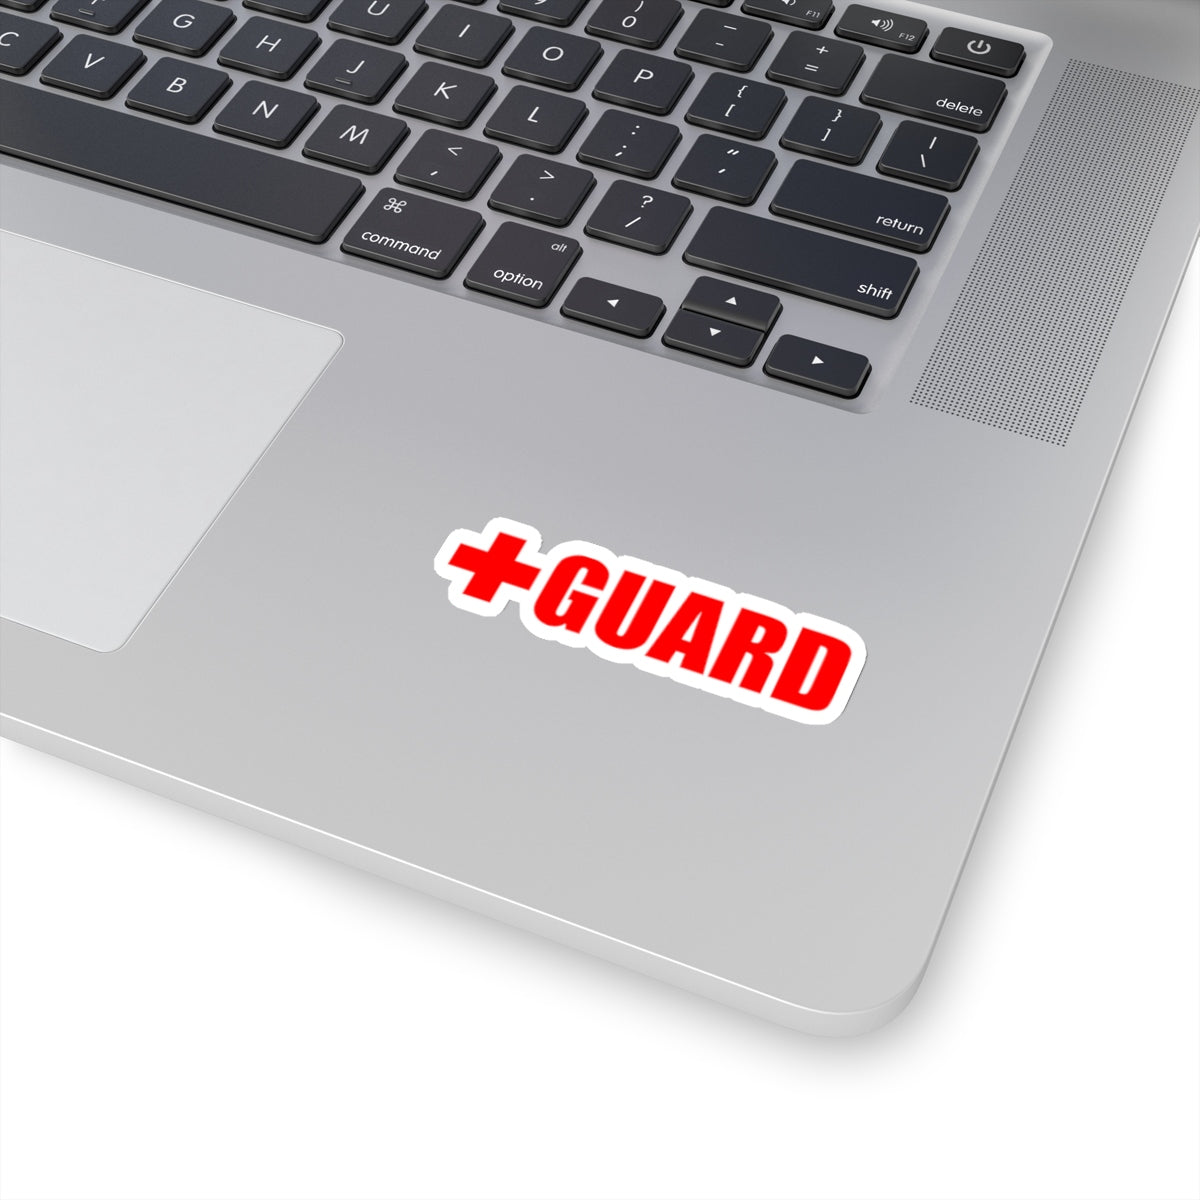 Lifeguard Kiss-Cut Stickers - BLARIX